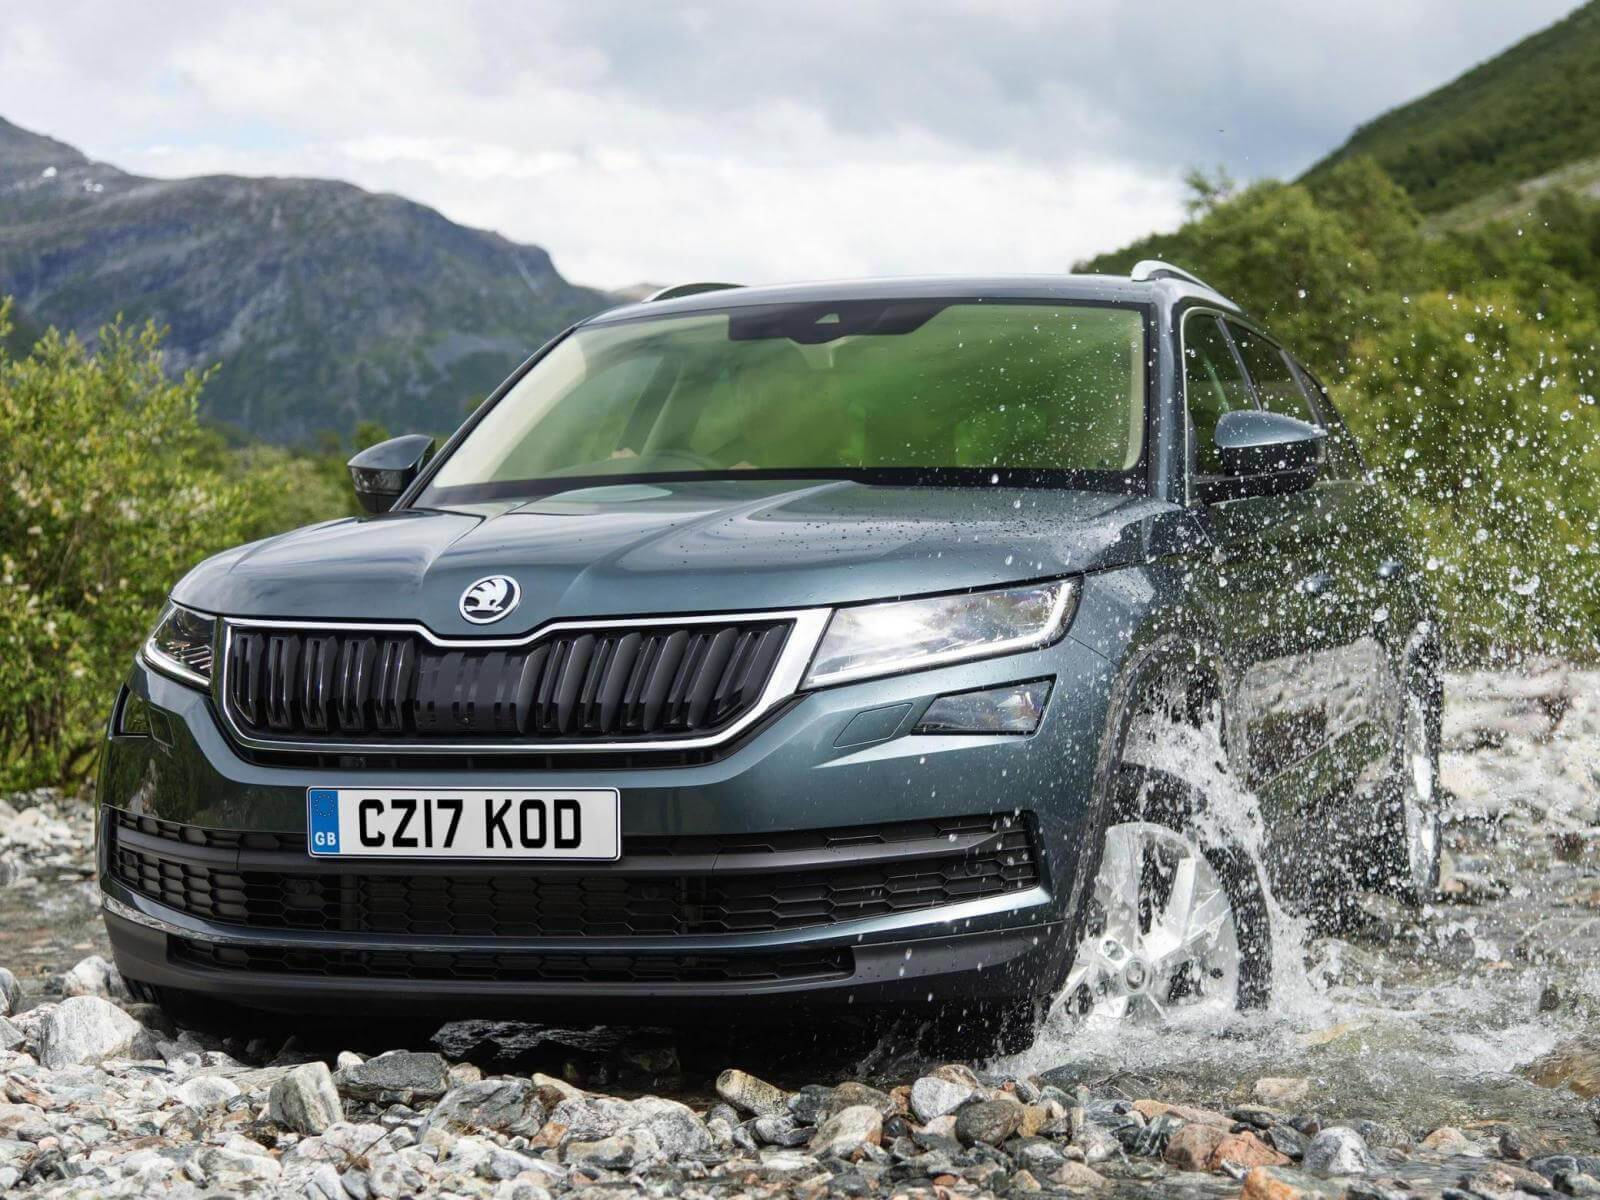 New Skoda Kodiaq Wallpapers Free Download On This Month